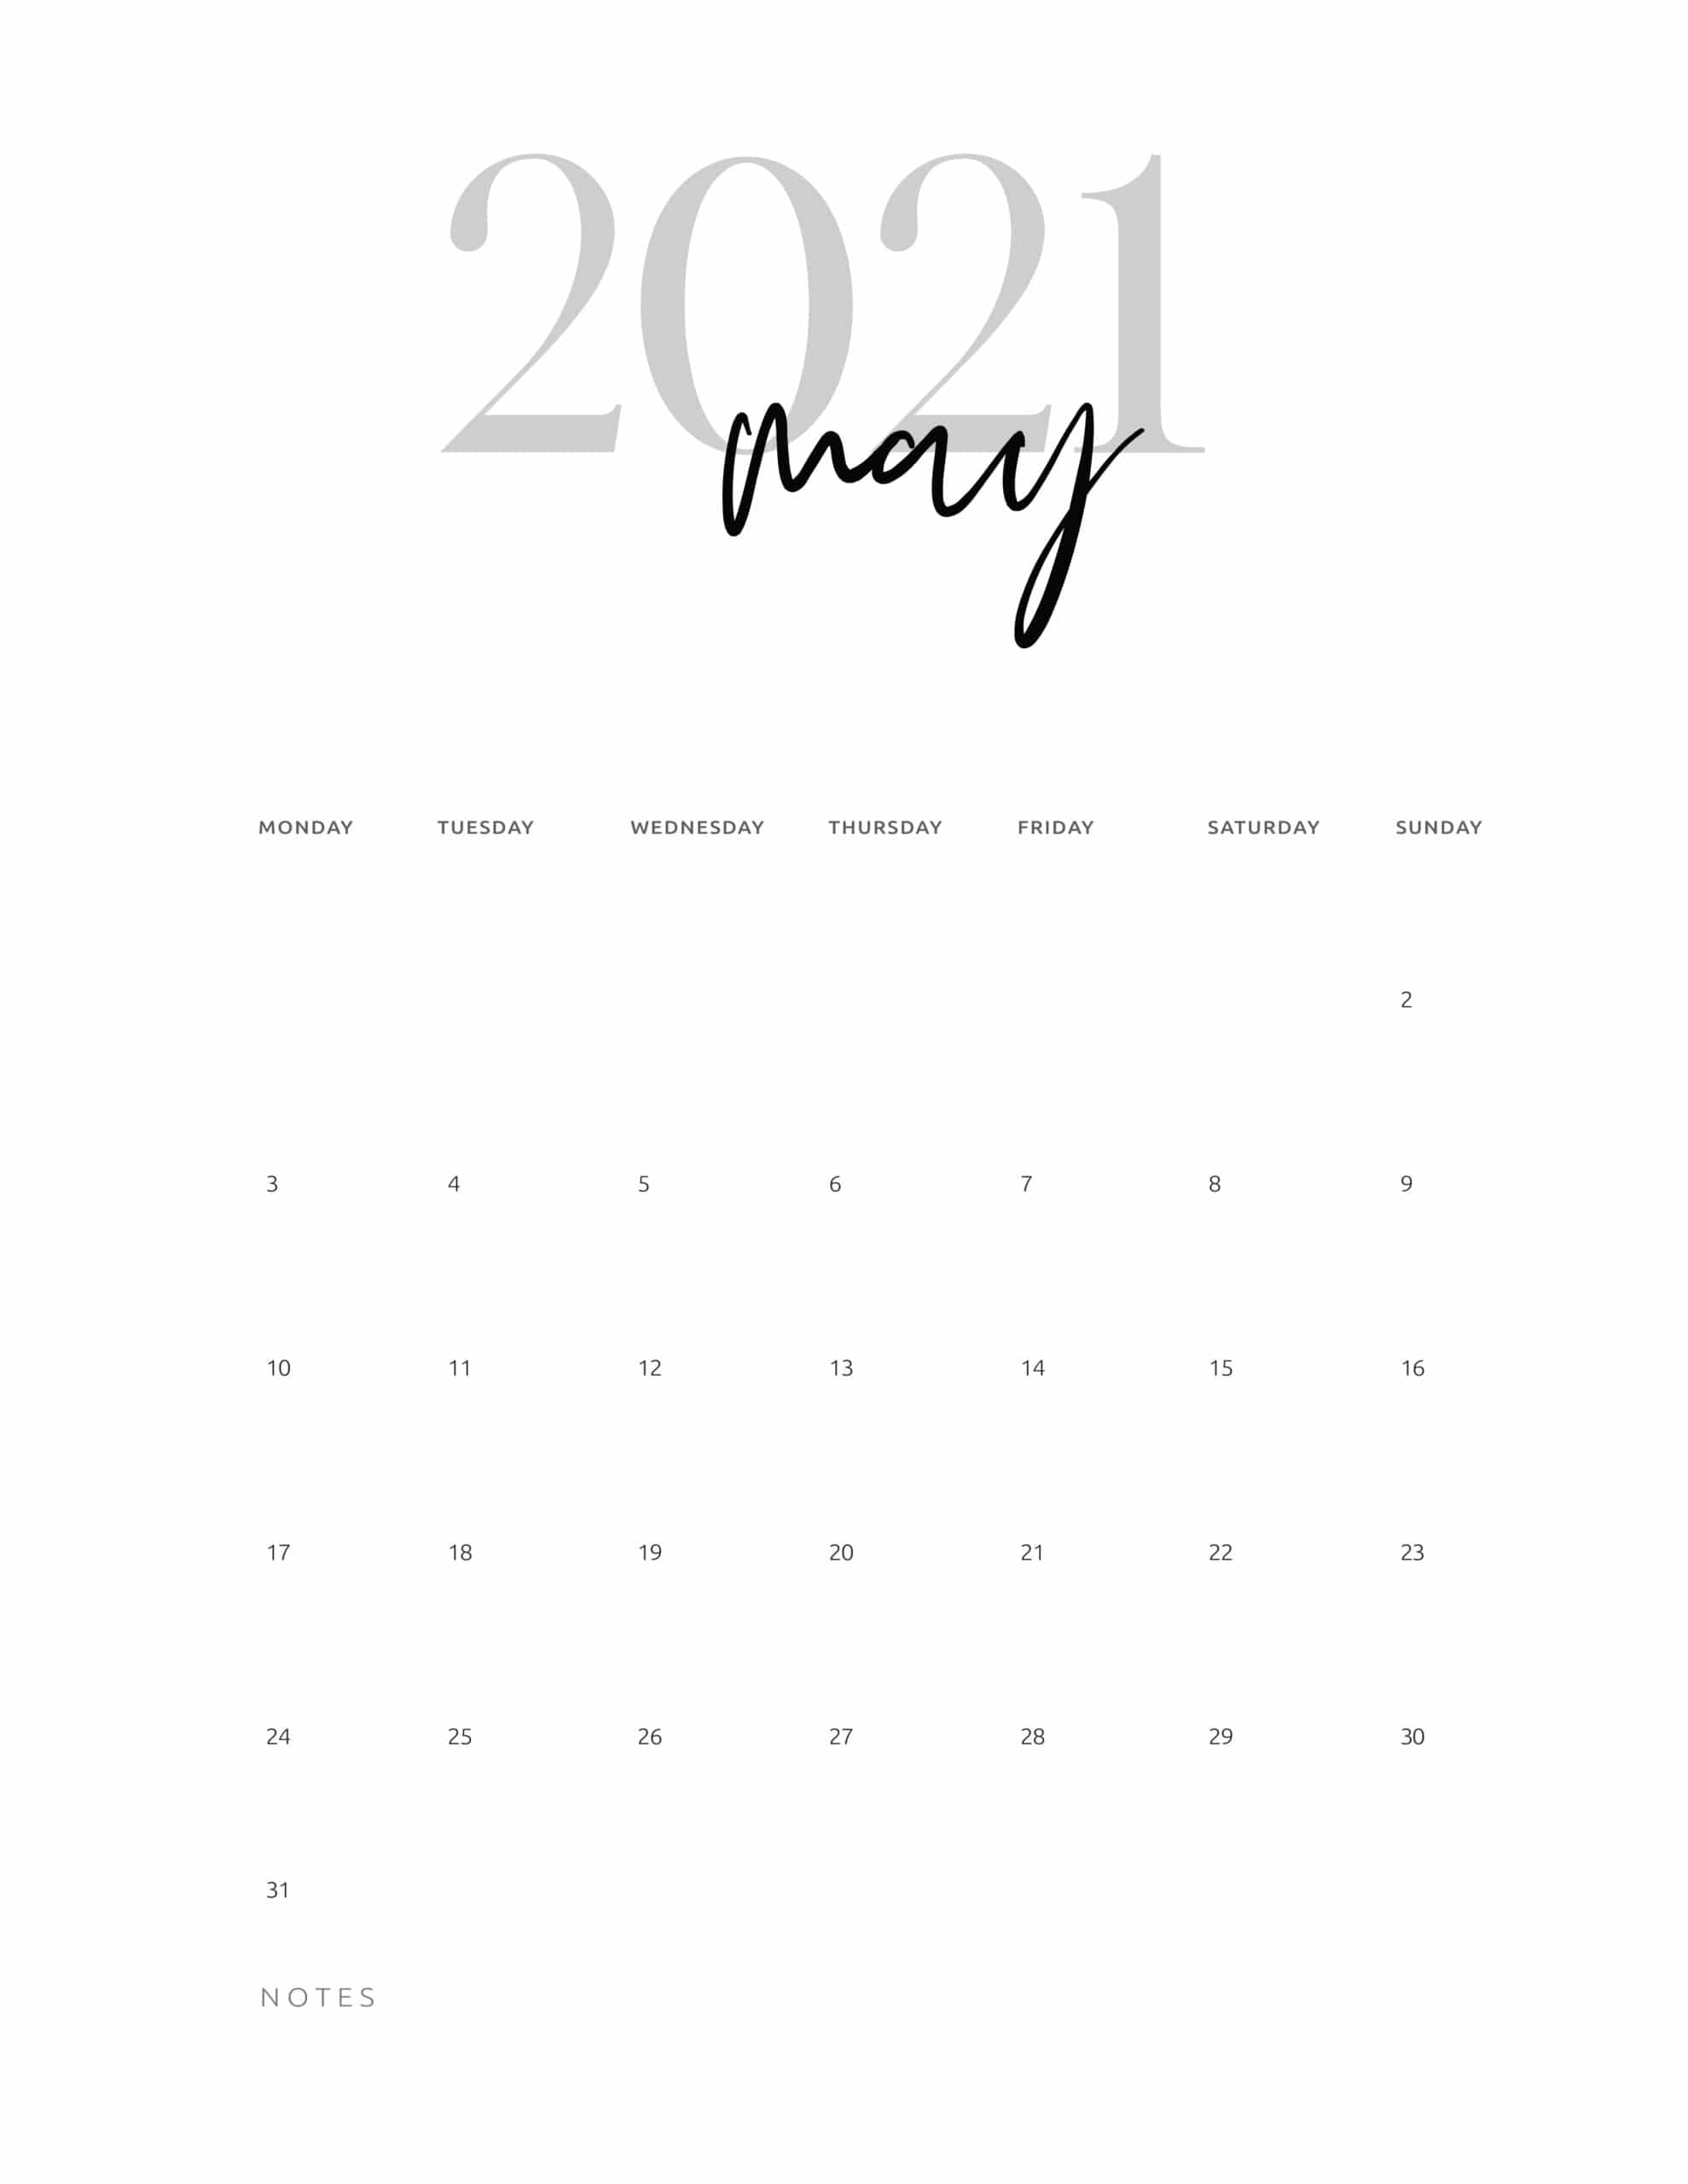 2021 Calendar Printable Cursive - World of Printables